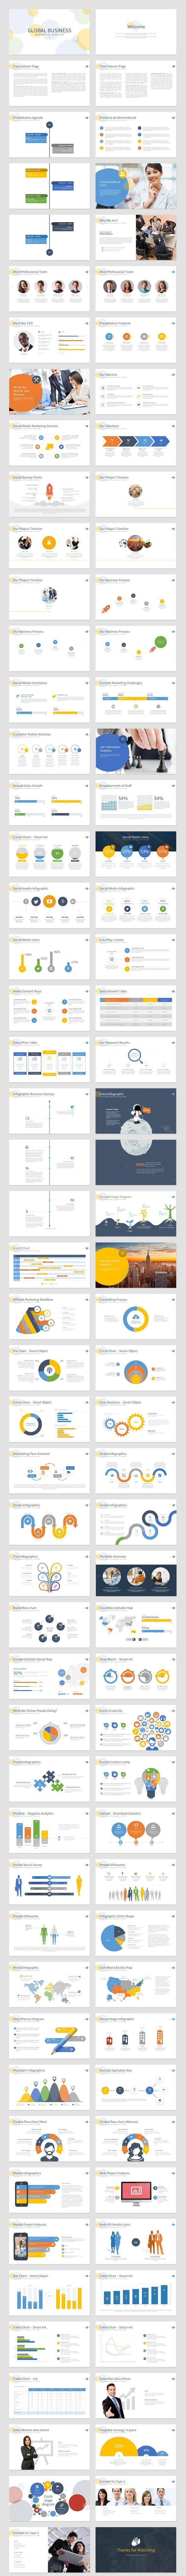 Global Business Multipurpose Presentation Template